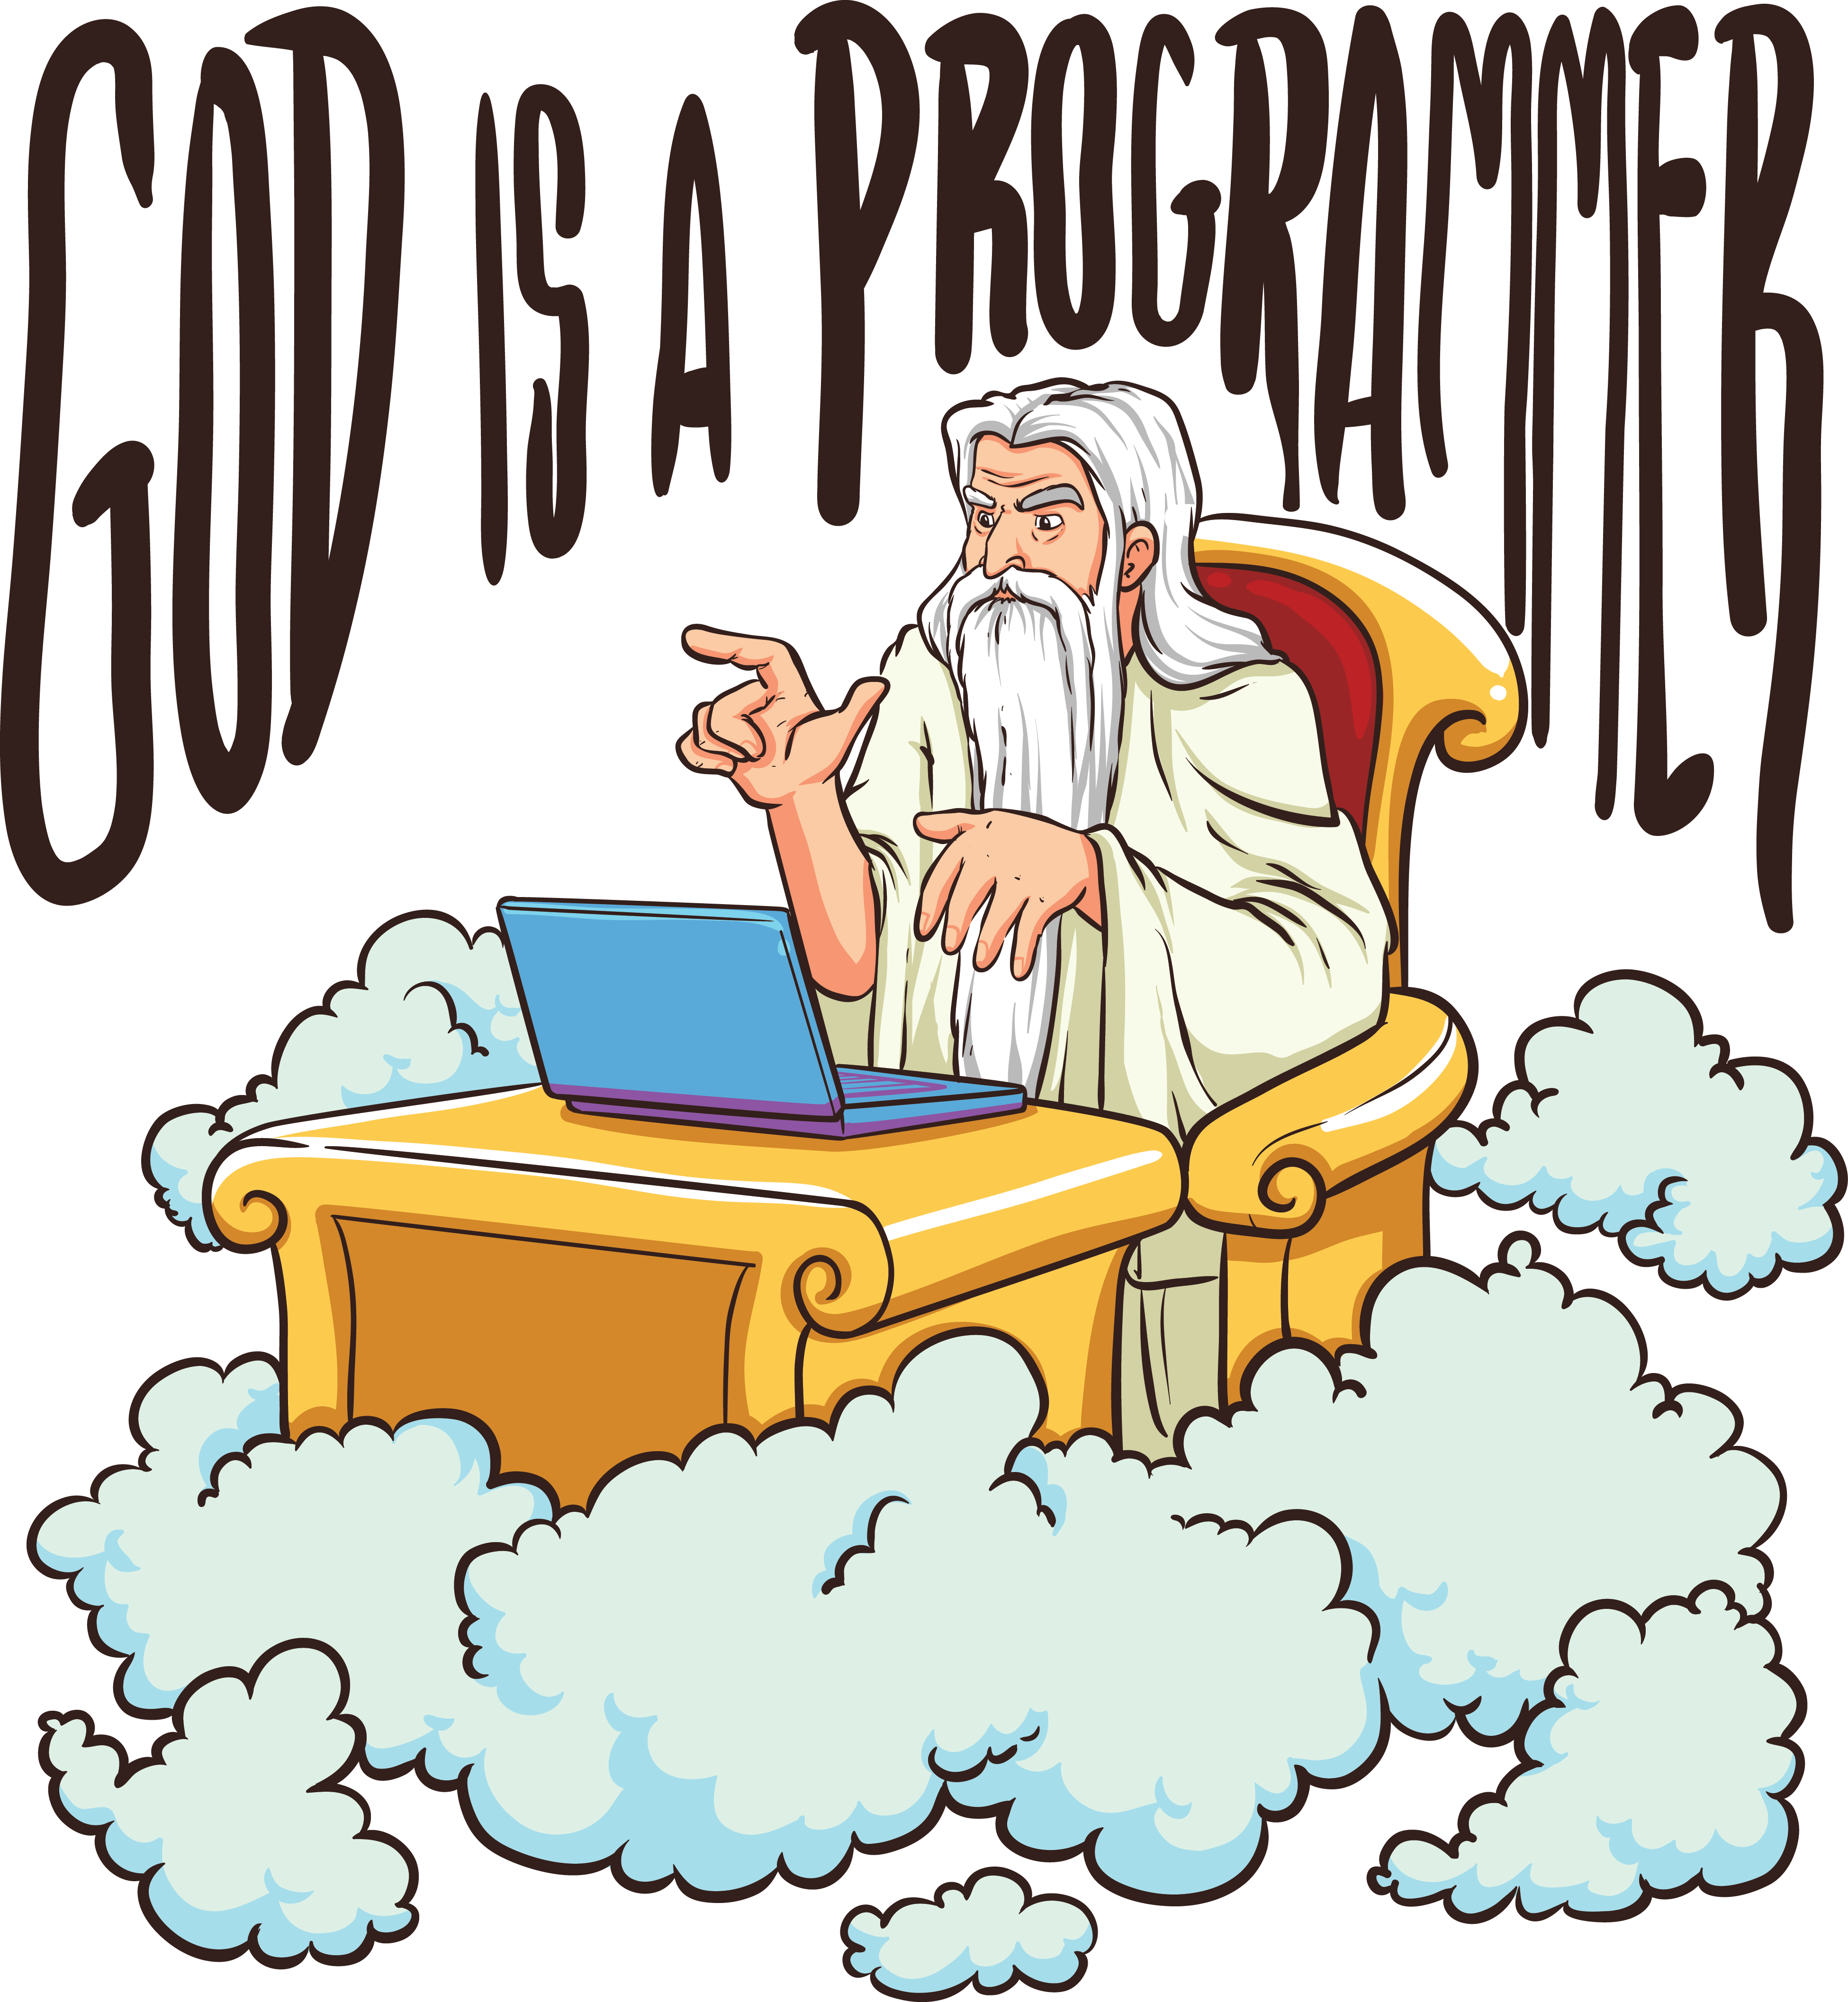 God is a programmer